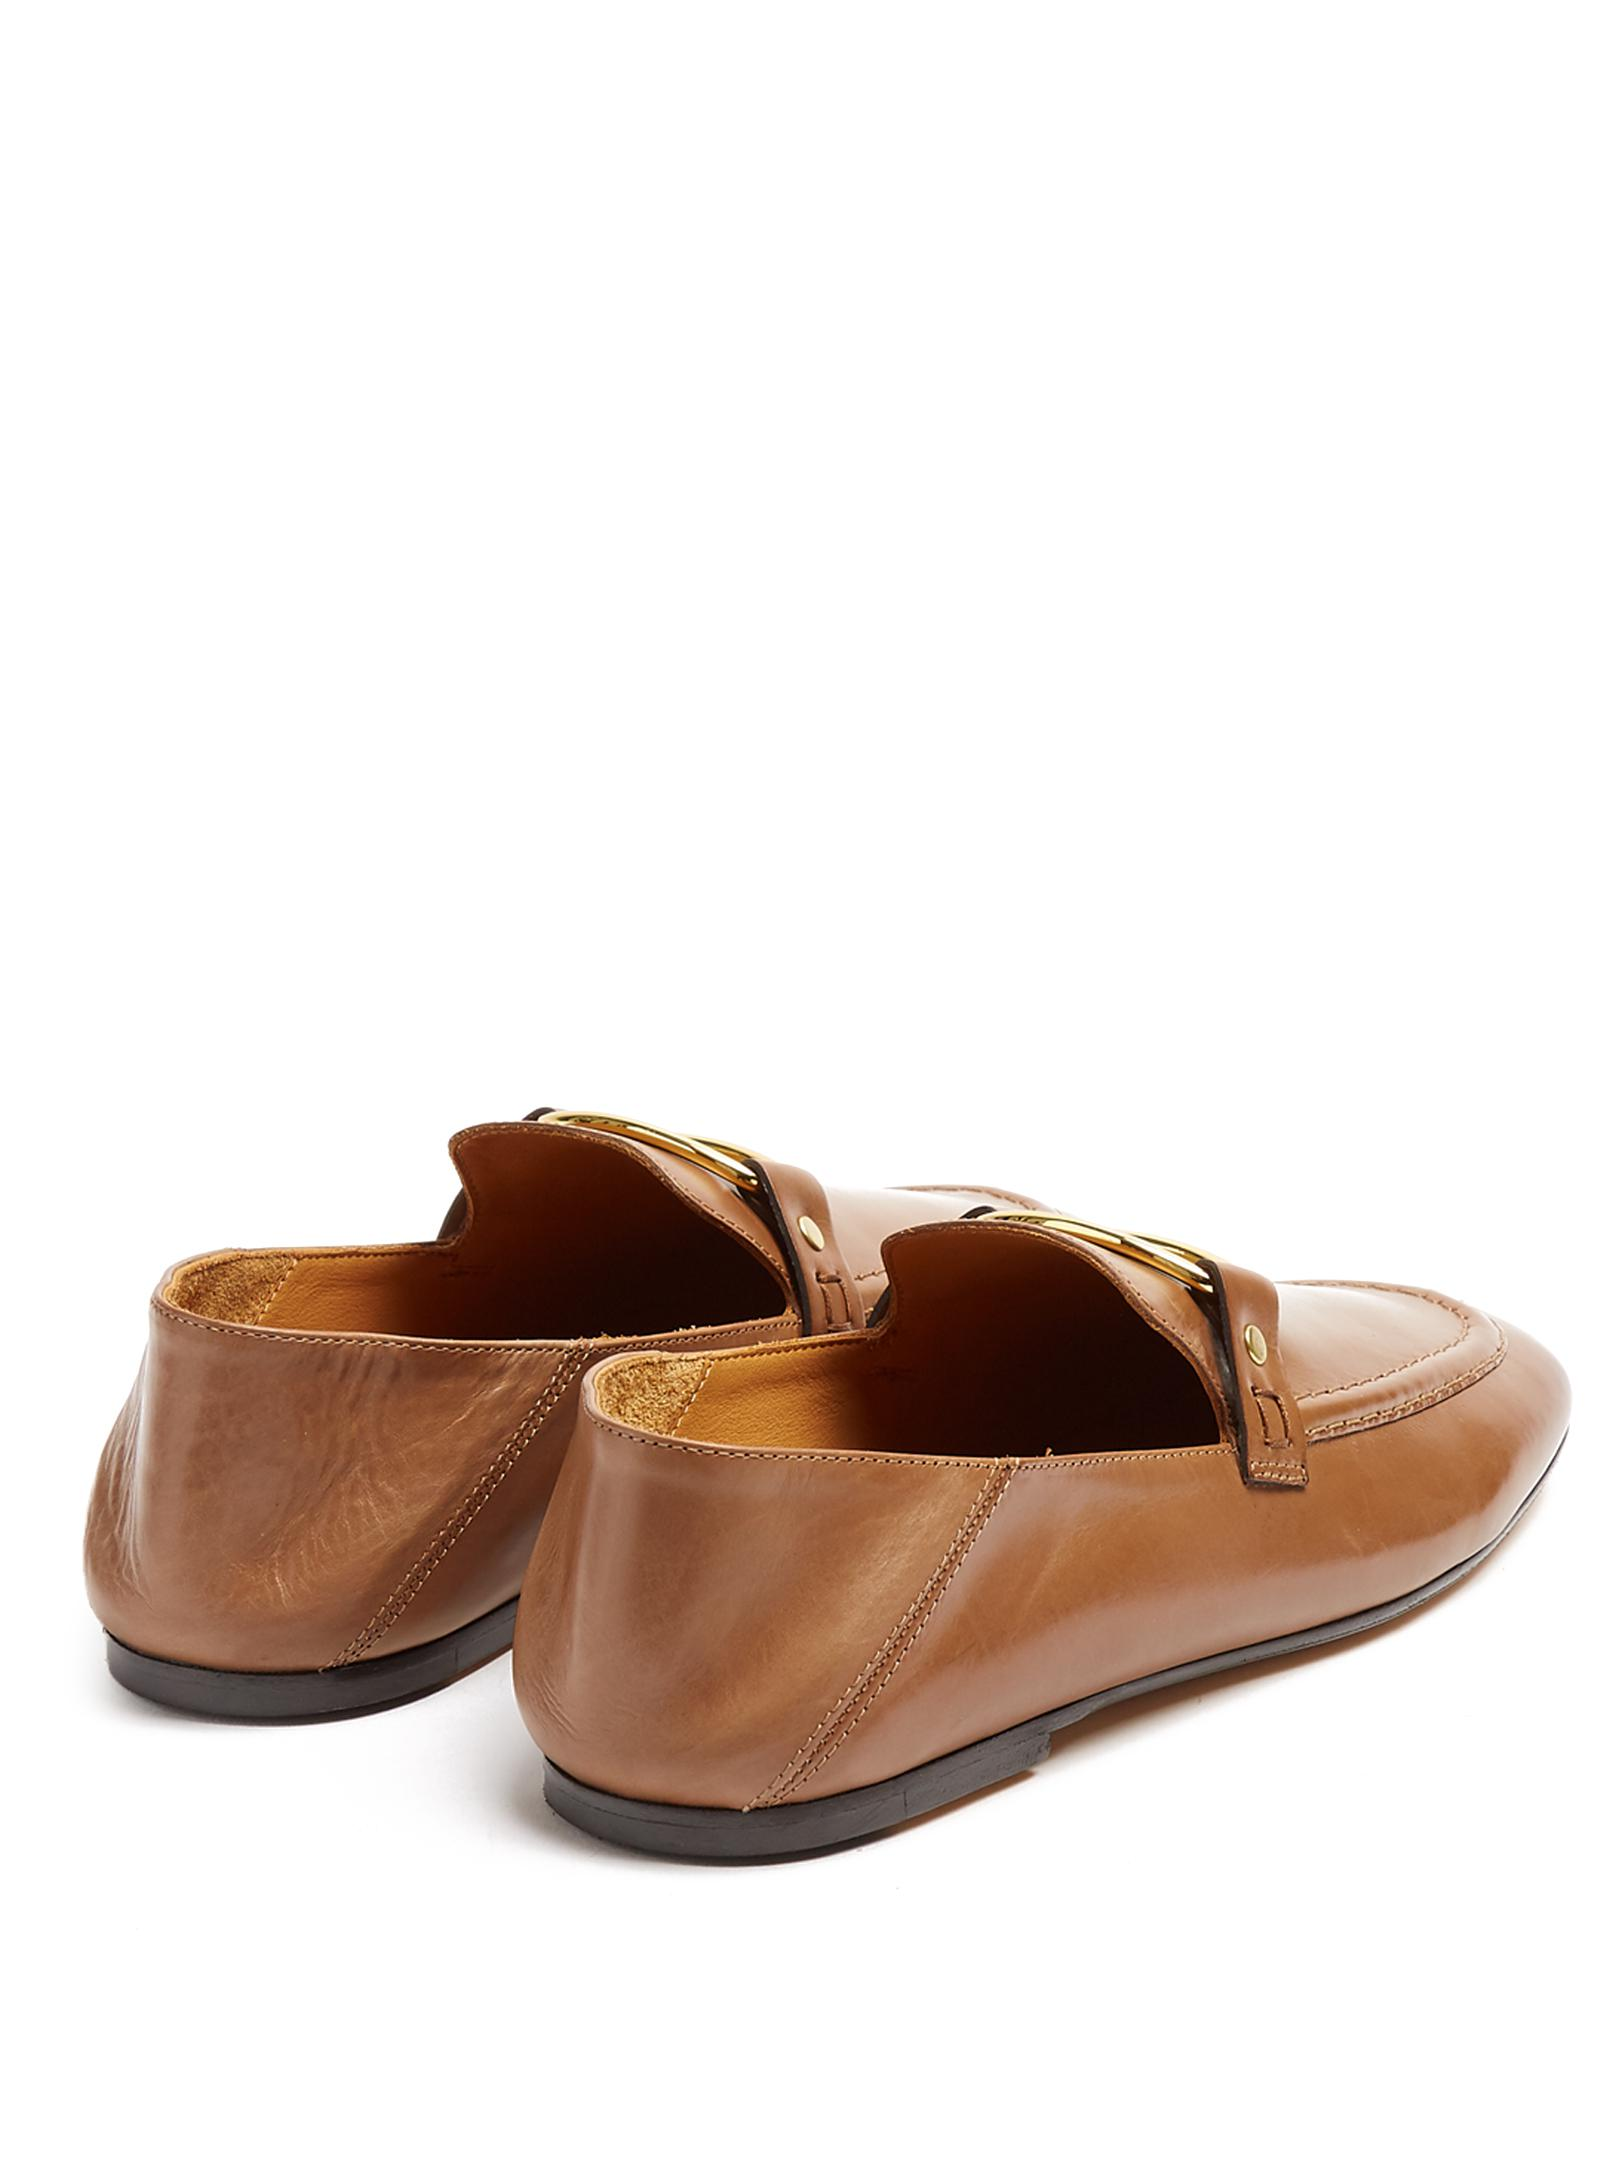 0d19ab4033b Lyst - Isabel Marant Ferlyn Collapsible-heel Leather Loafers in Brown